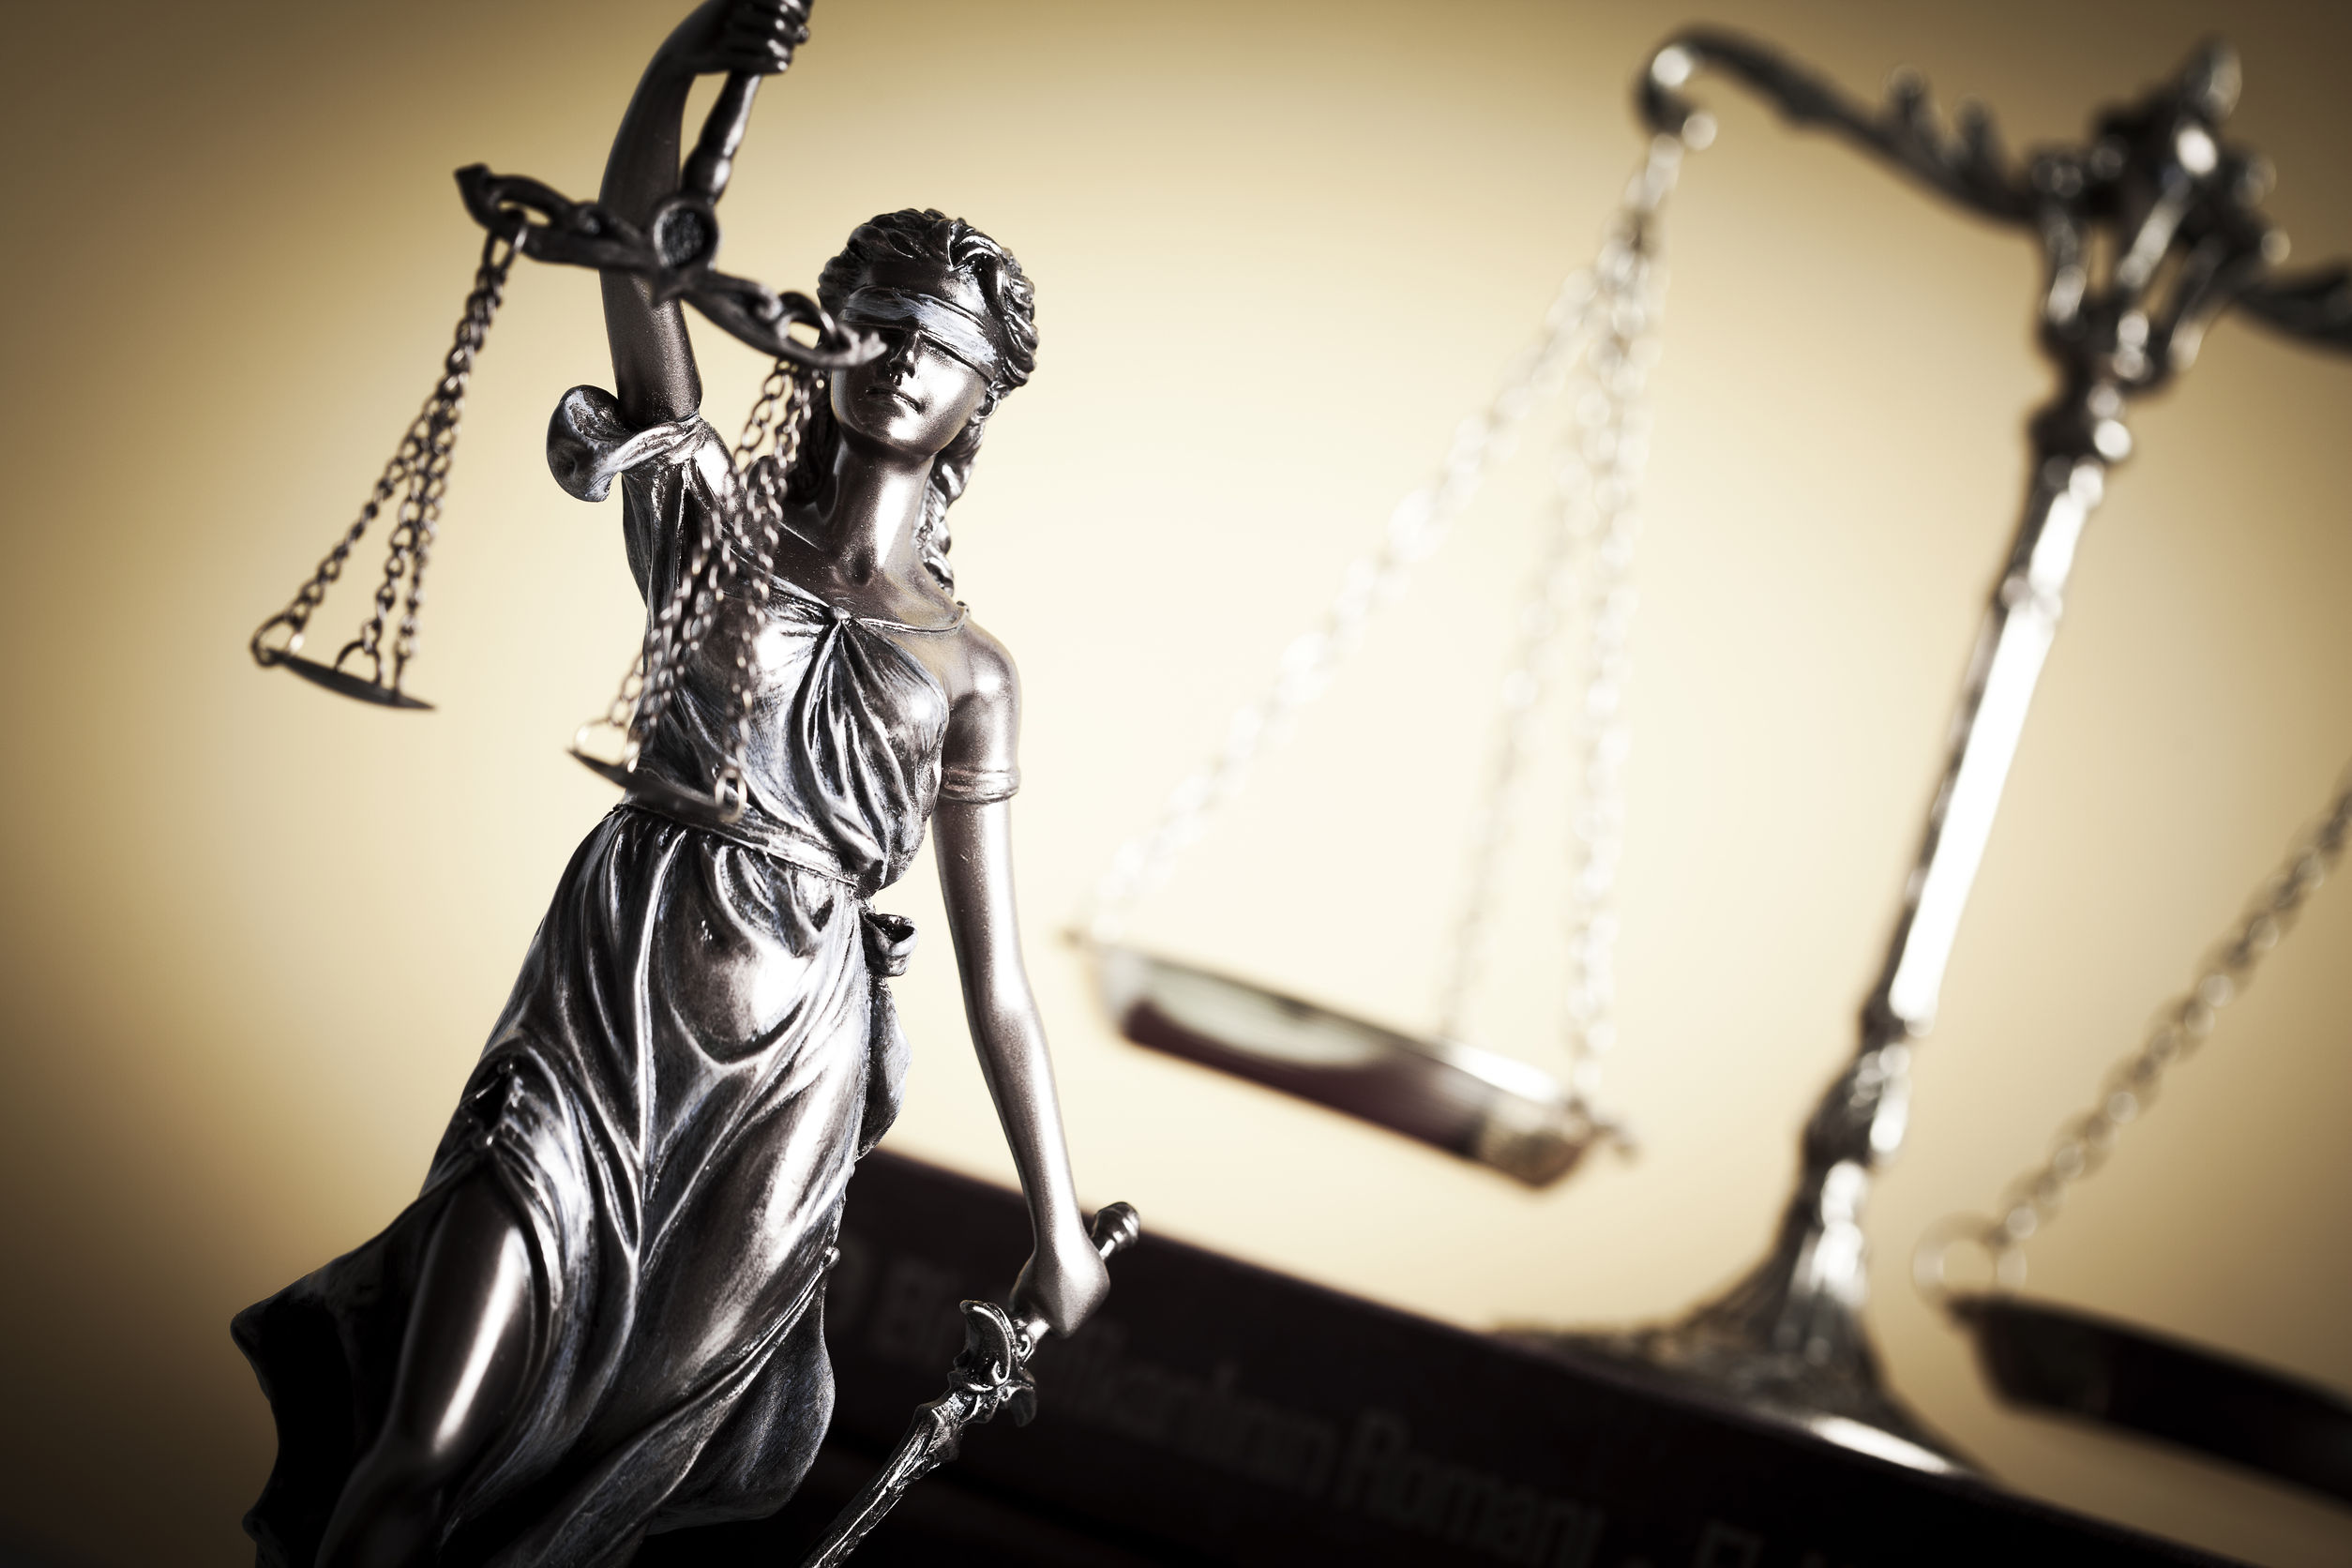 justice system on healthcare compliance